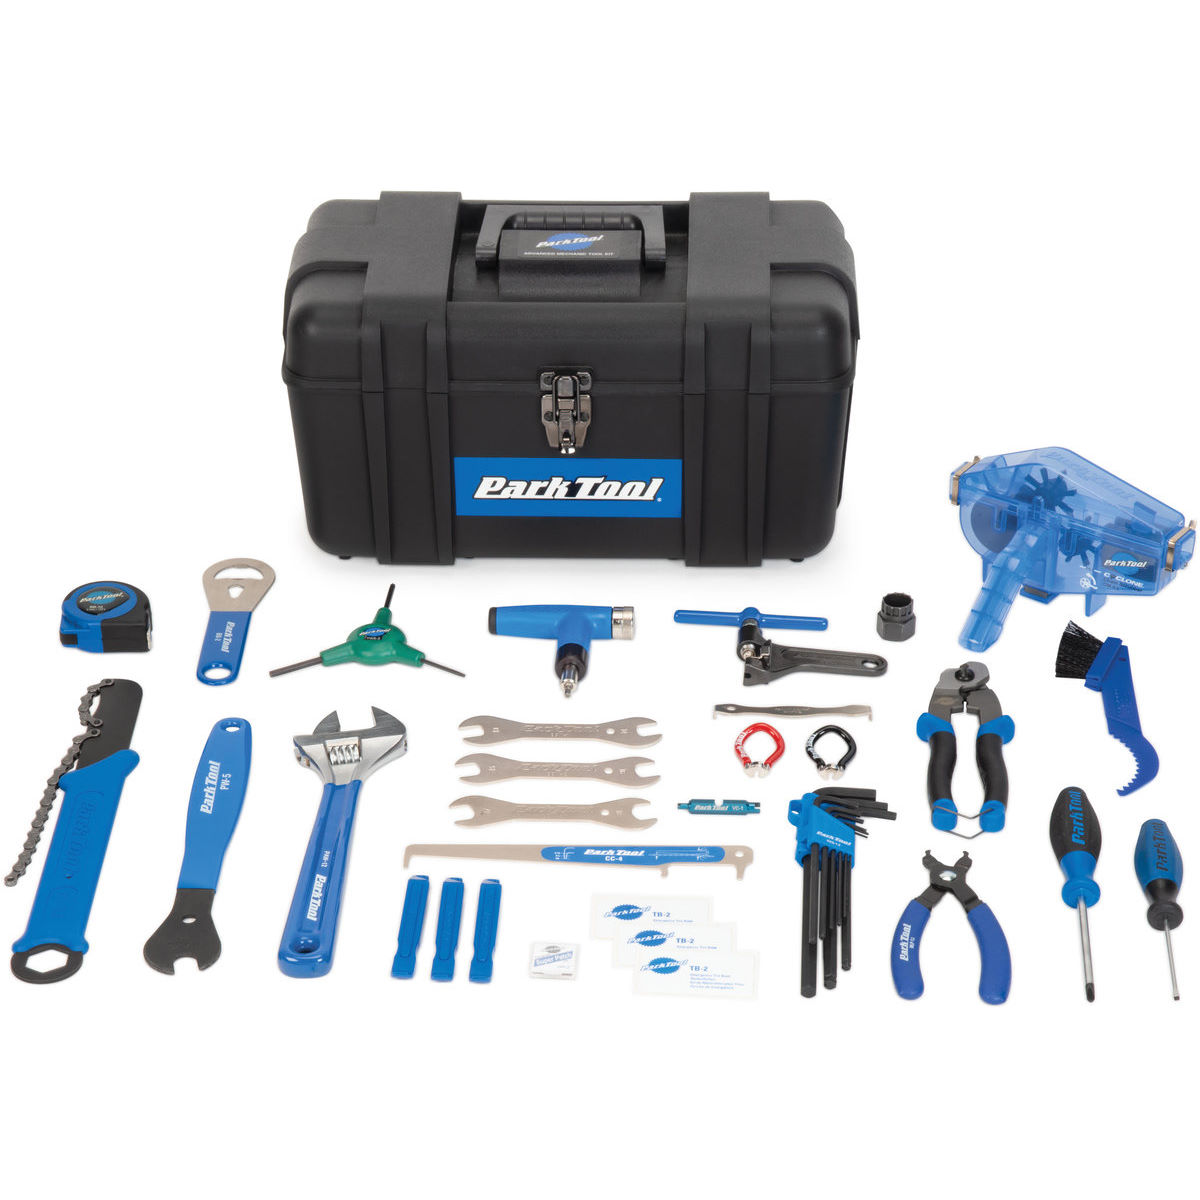 Park Tool Park Tool Advanced Mechanic Tool Kit - AK4   Tool Sets